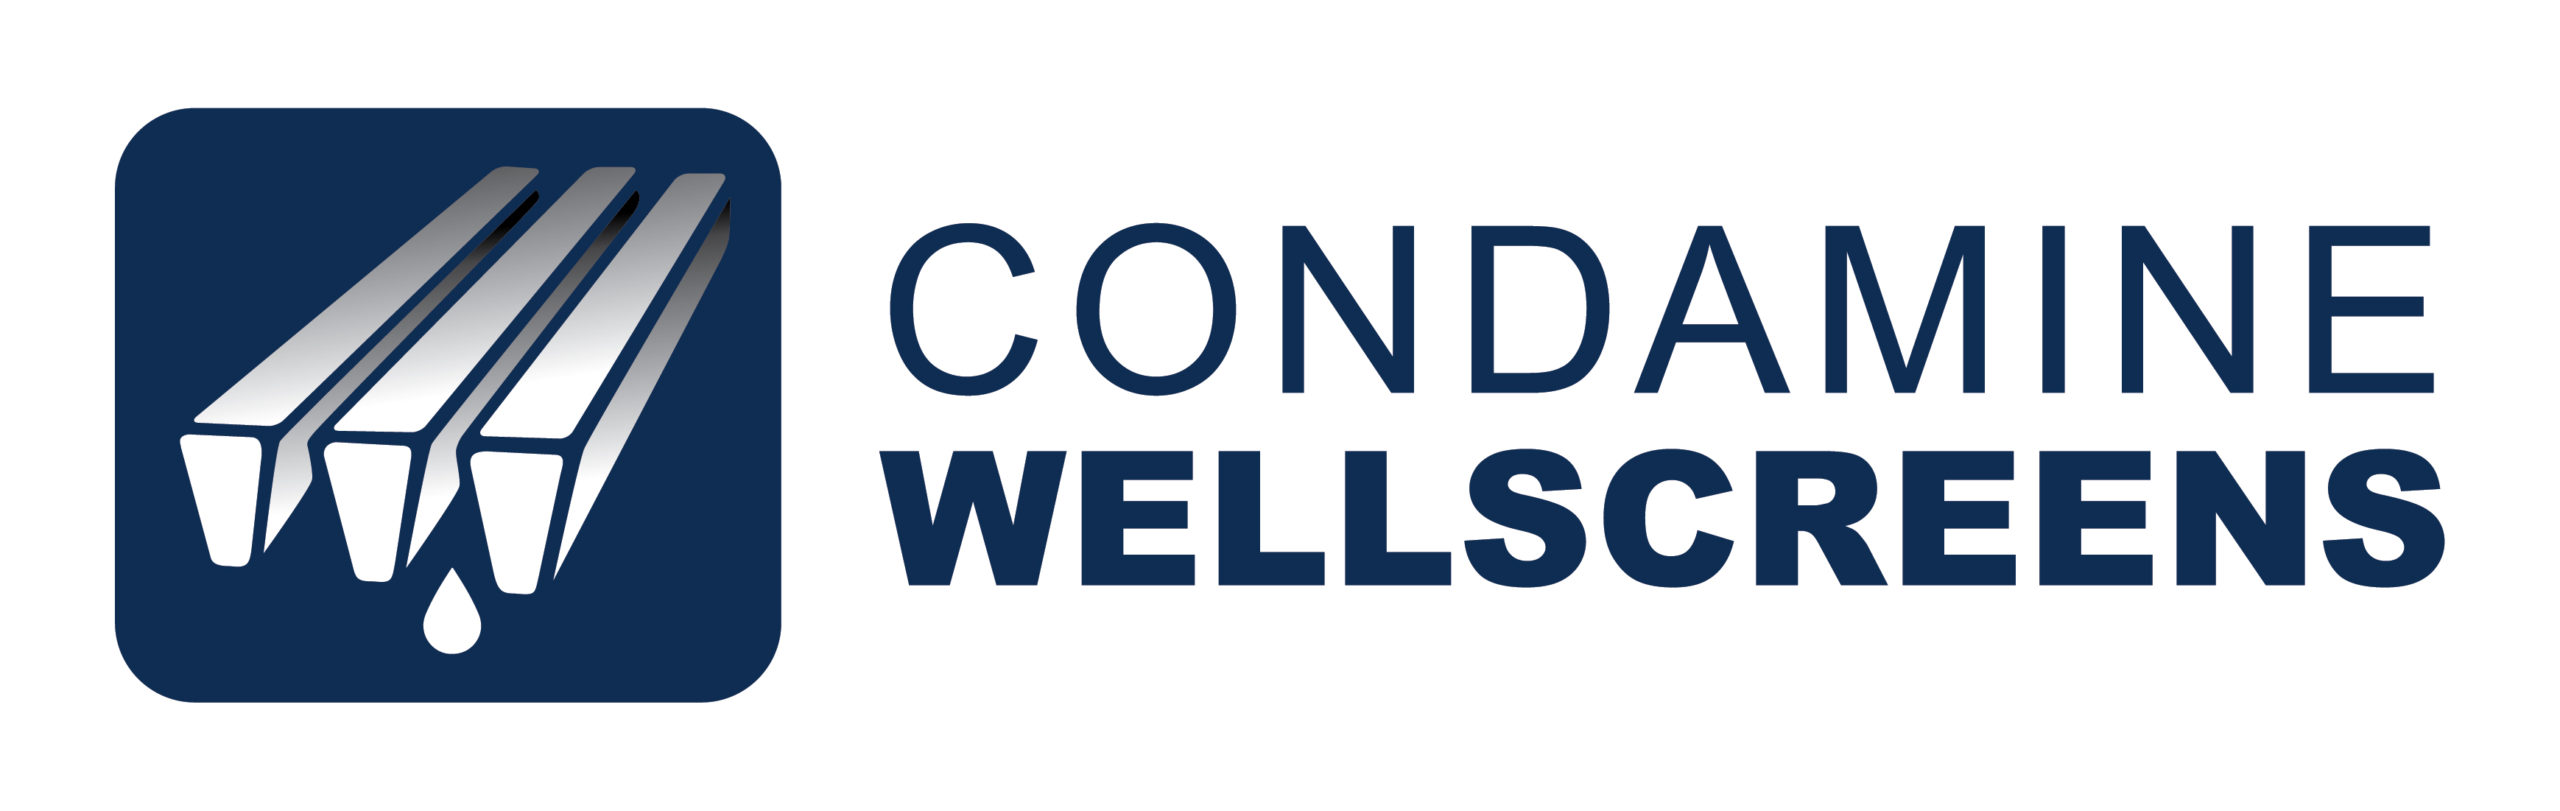 Condamine Wellscreens